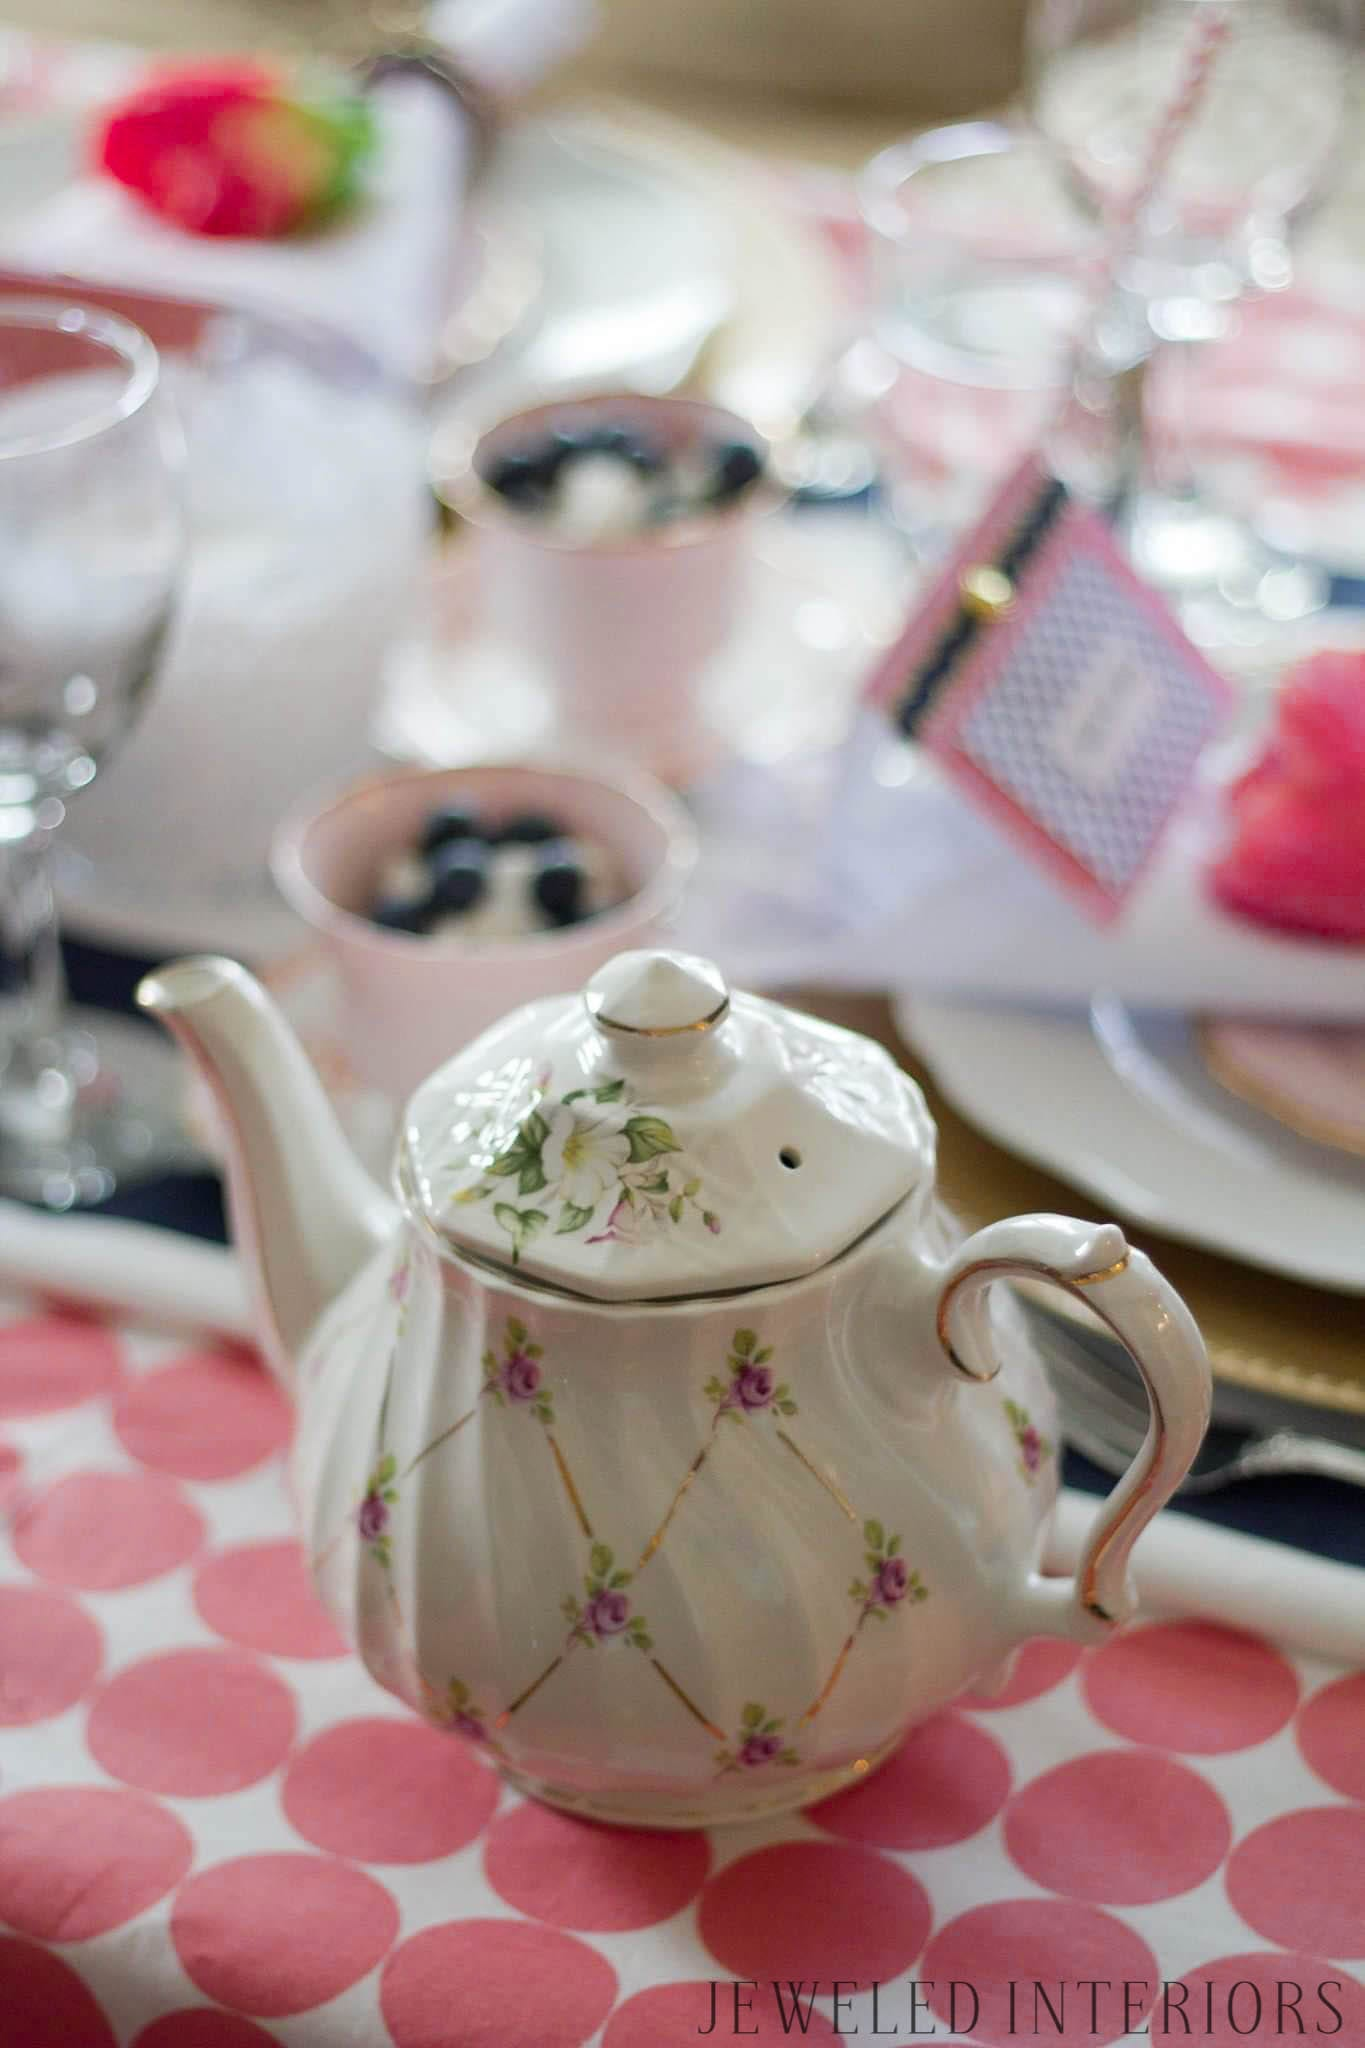 Kate Spade Vintage inspired tea party jeweled interiors